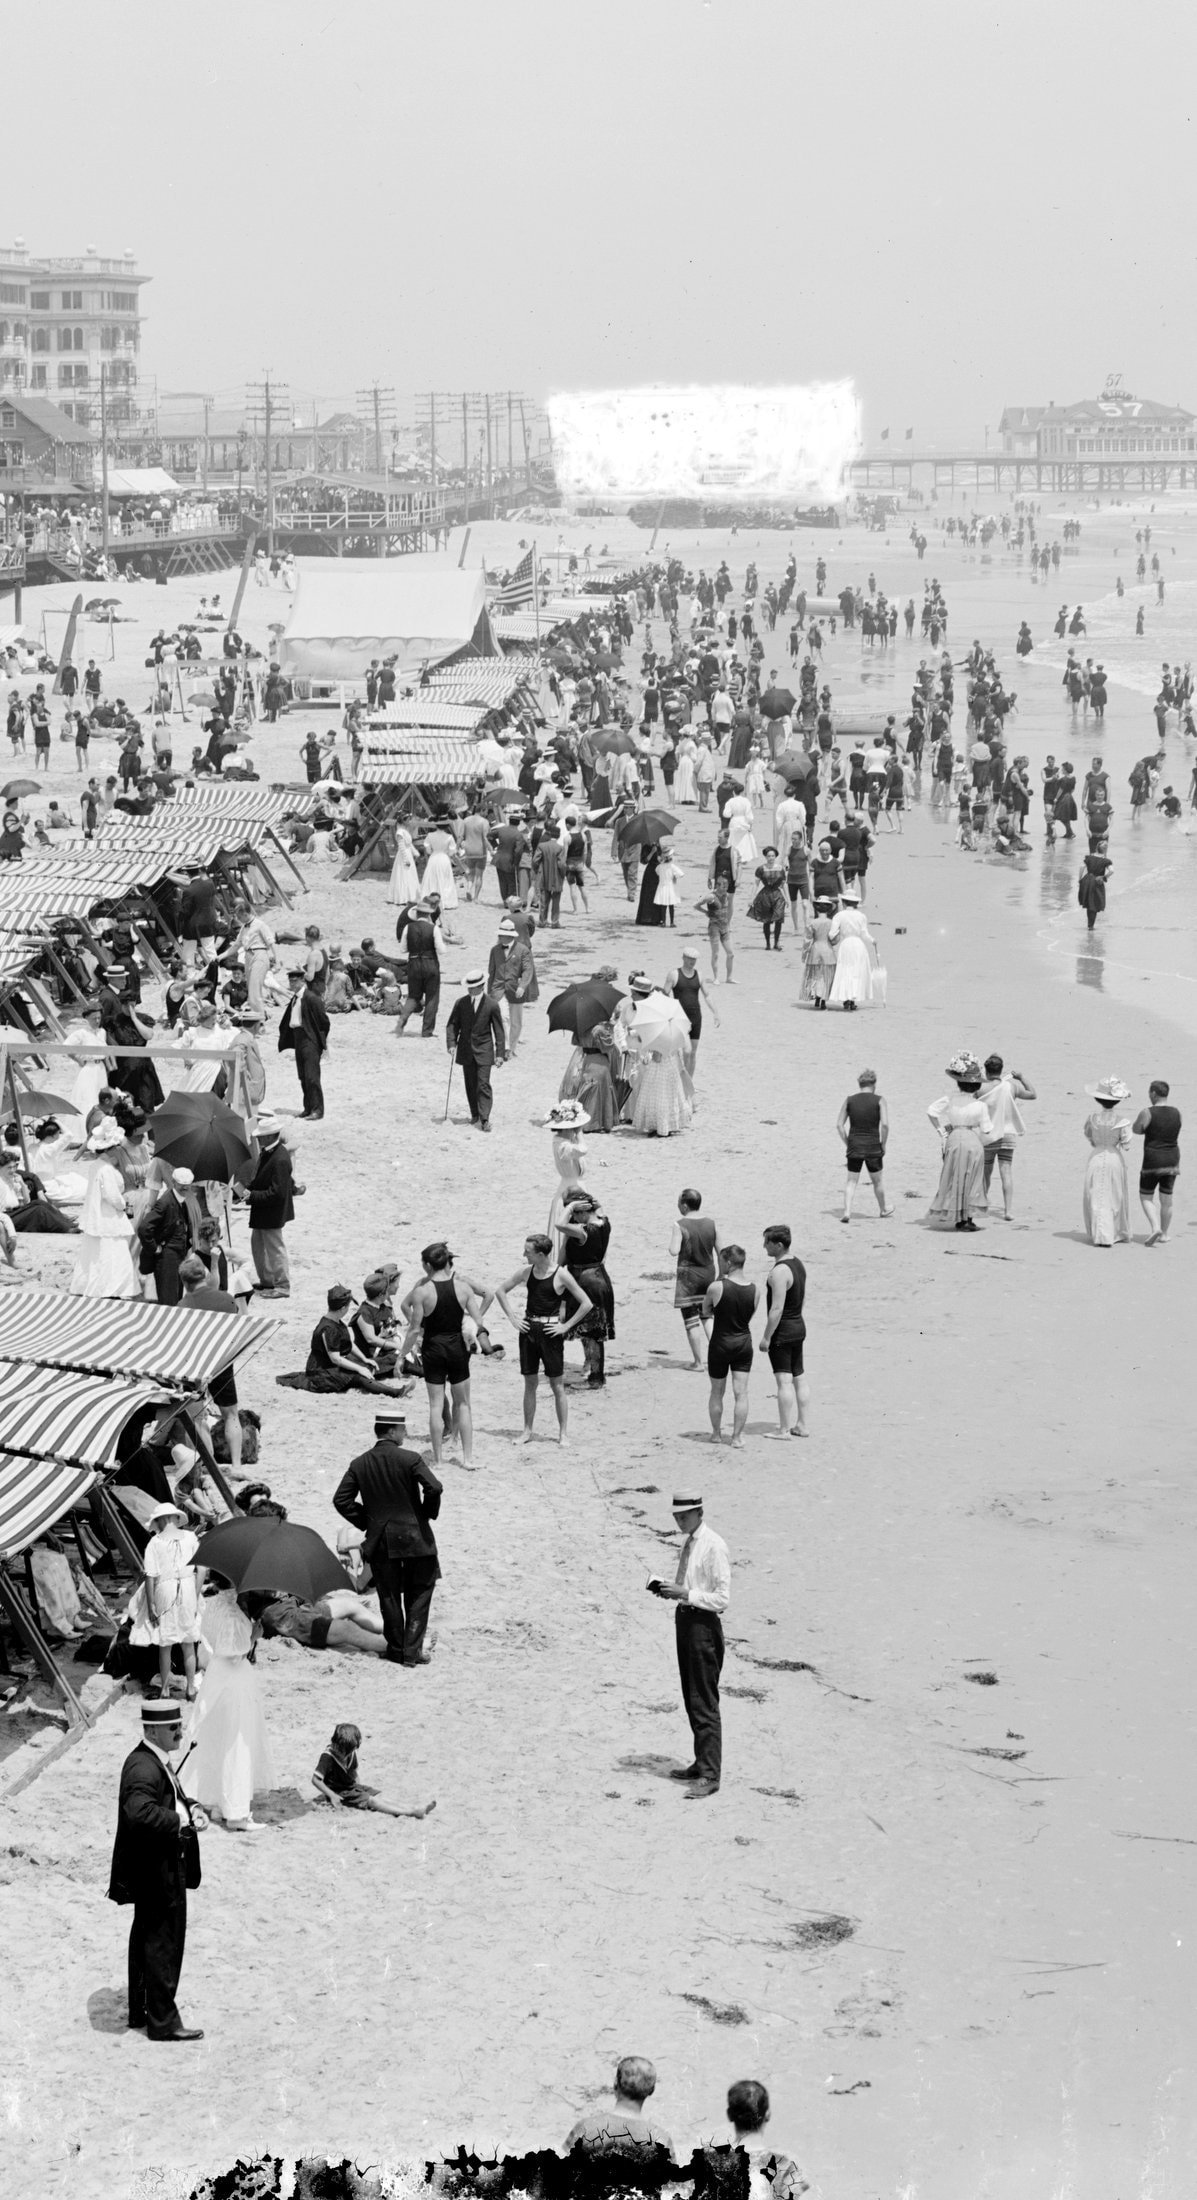 Vintage Jersey Shore beach scenes from the early 1900s (3)